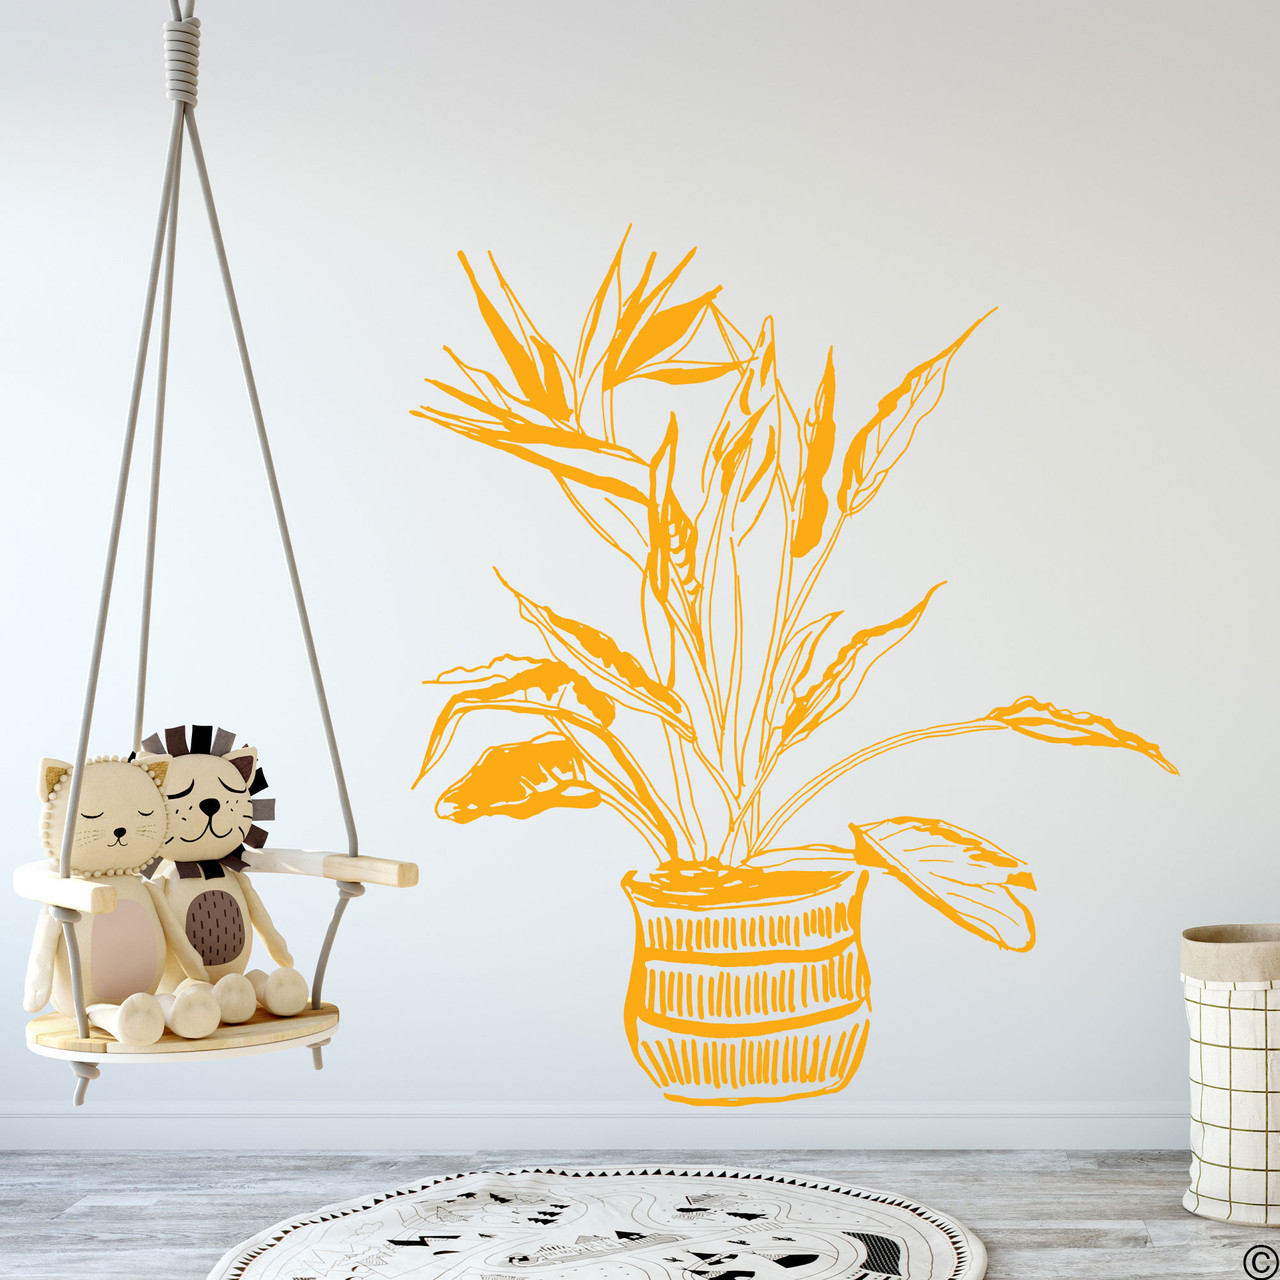 The hand drawn Bird of Paradise potted plant wall decal in the golden yellow vinyl color.